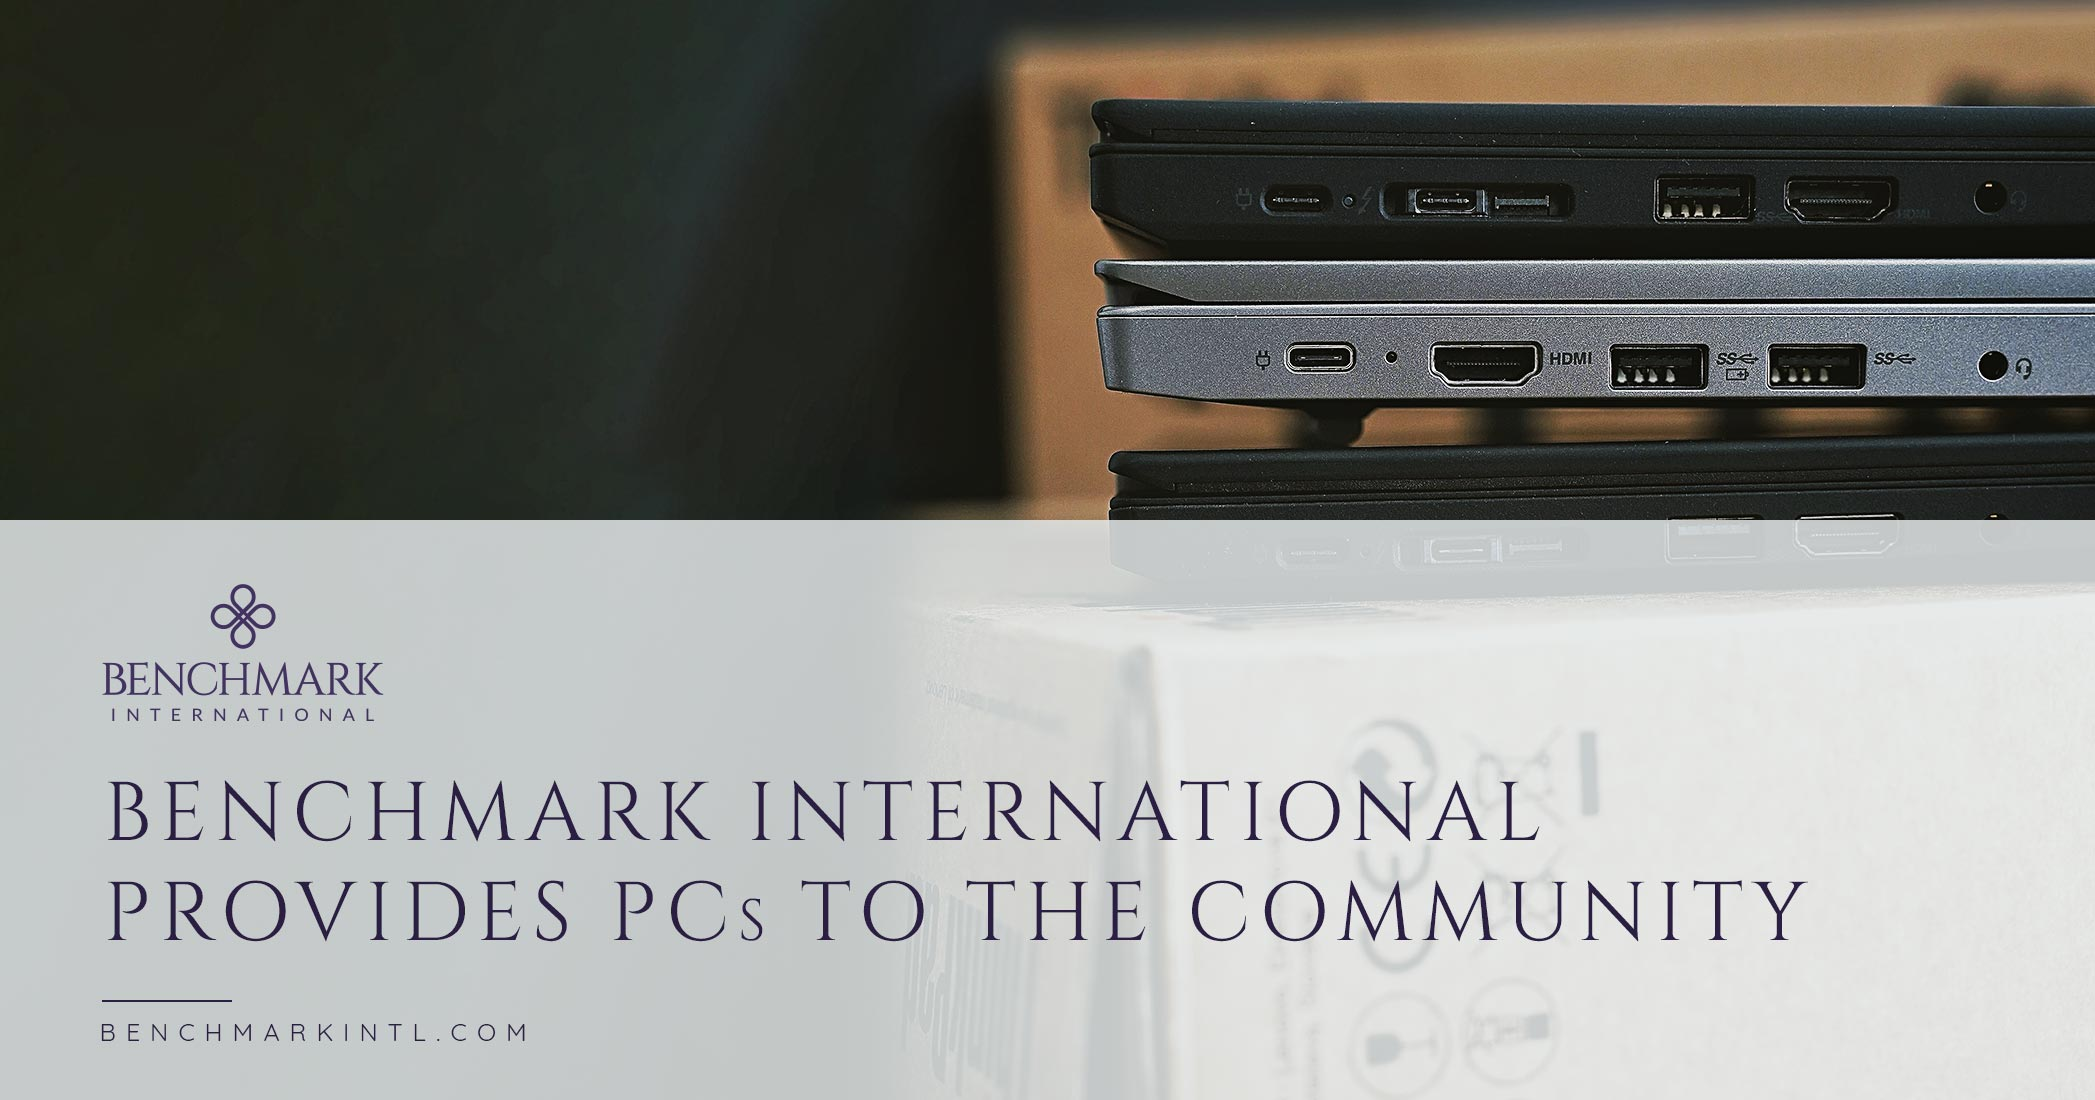 Benchmark International Provides PCs to the Community